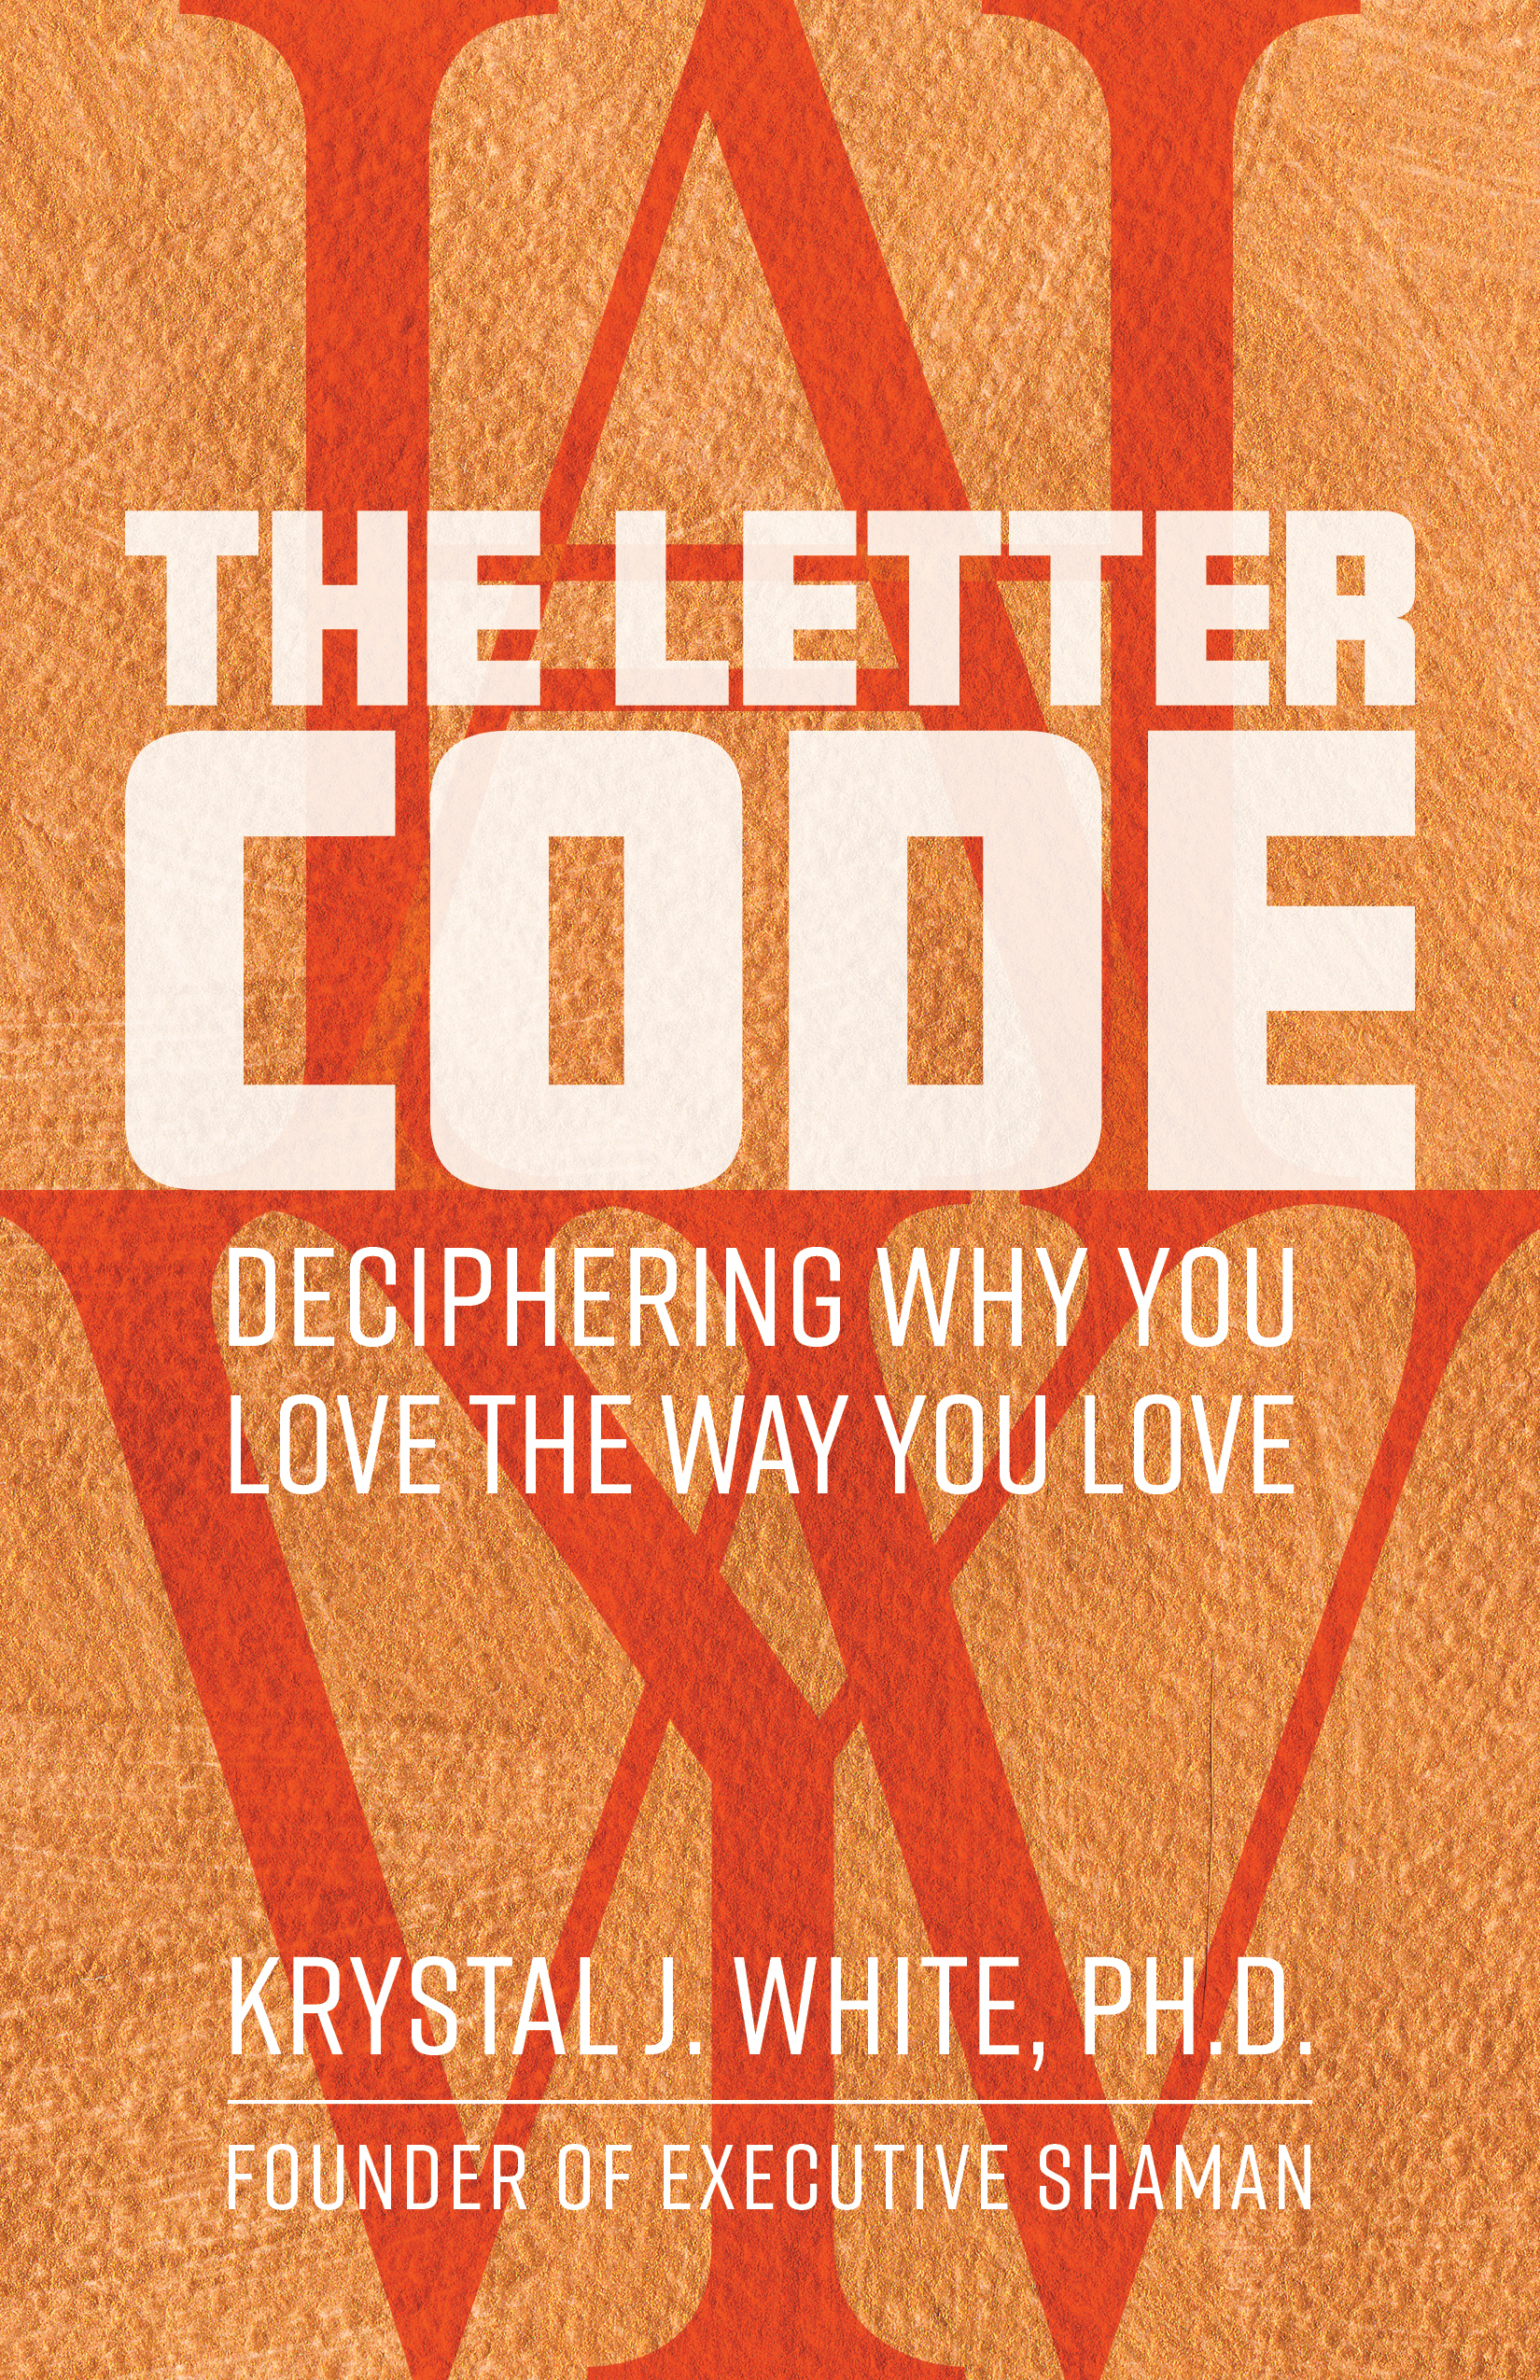 LetterCode_Kindle.jpg